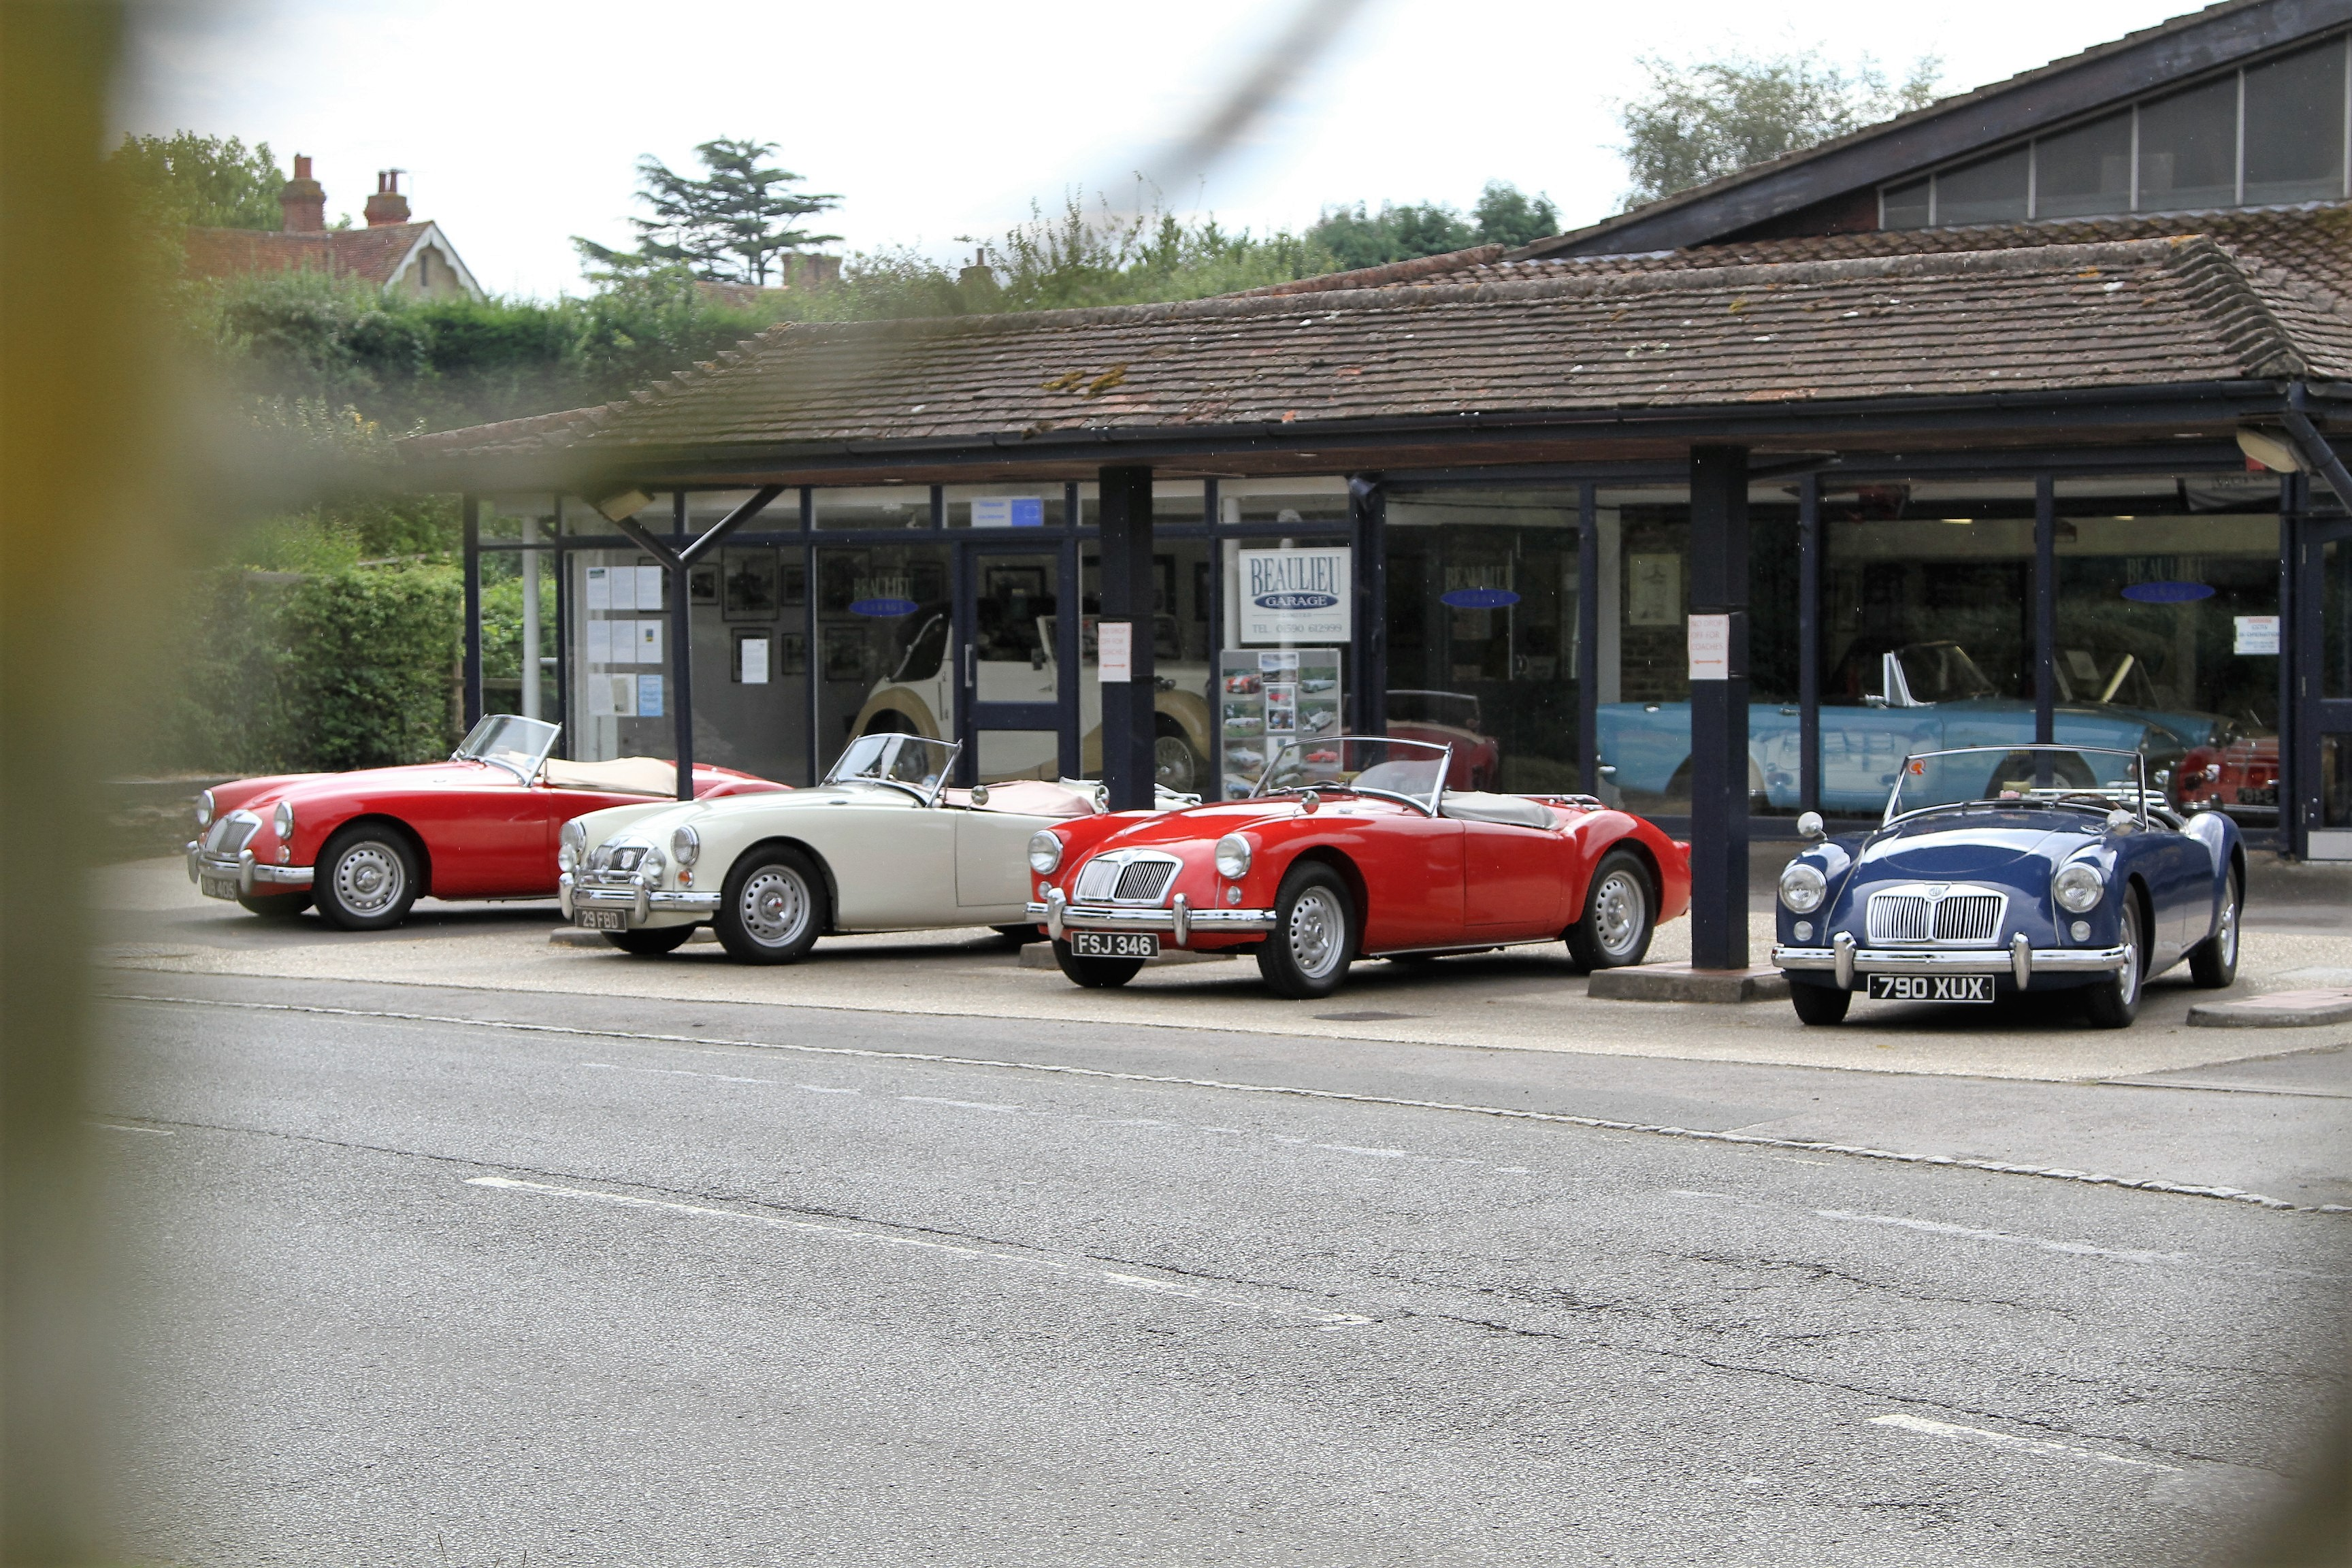 A rare MGA sighting!